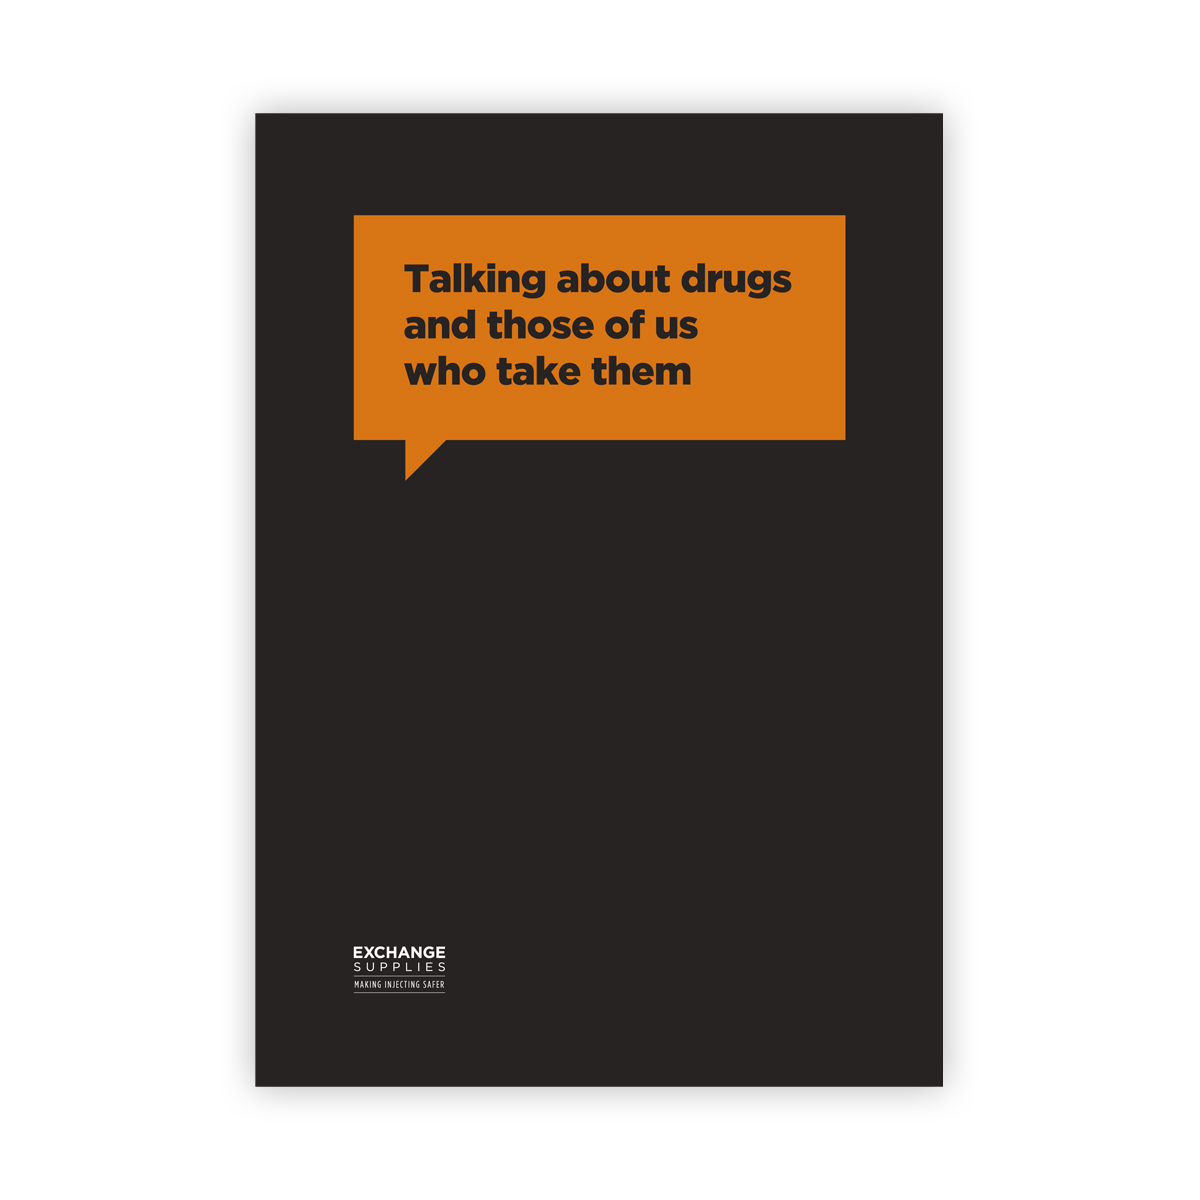 Talking about drugs and those of us who take them